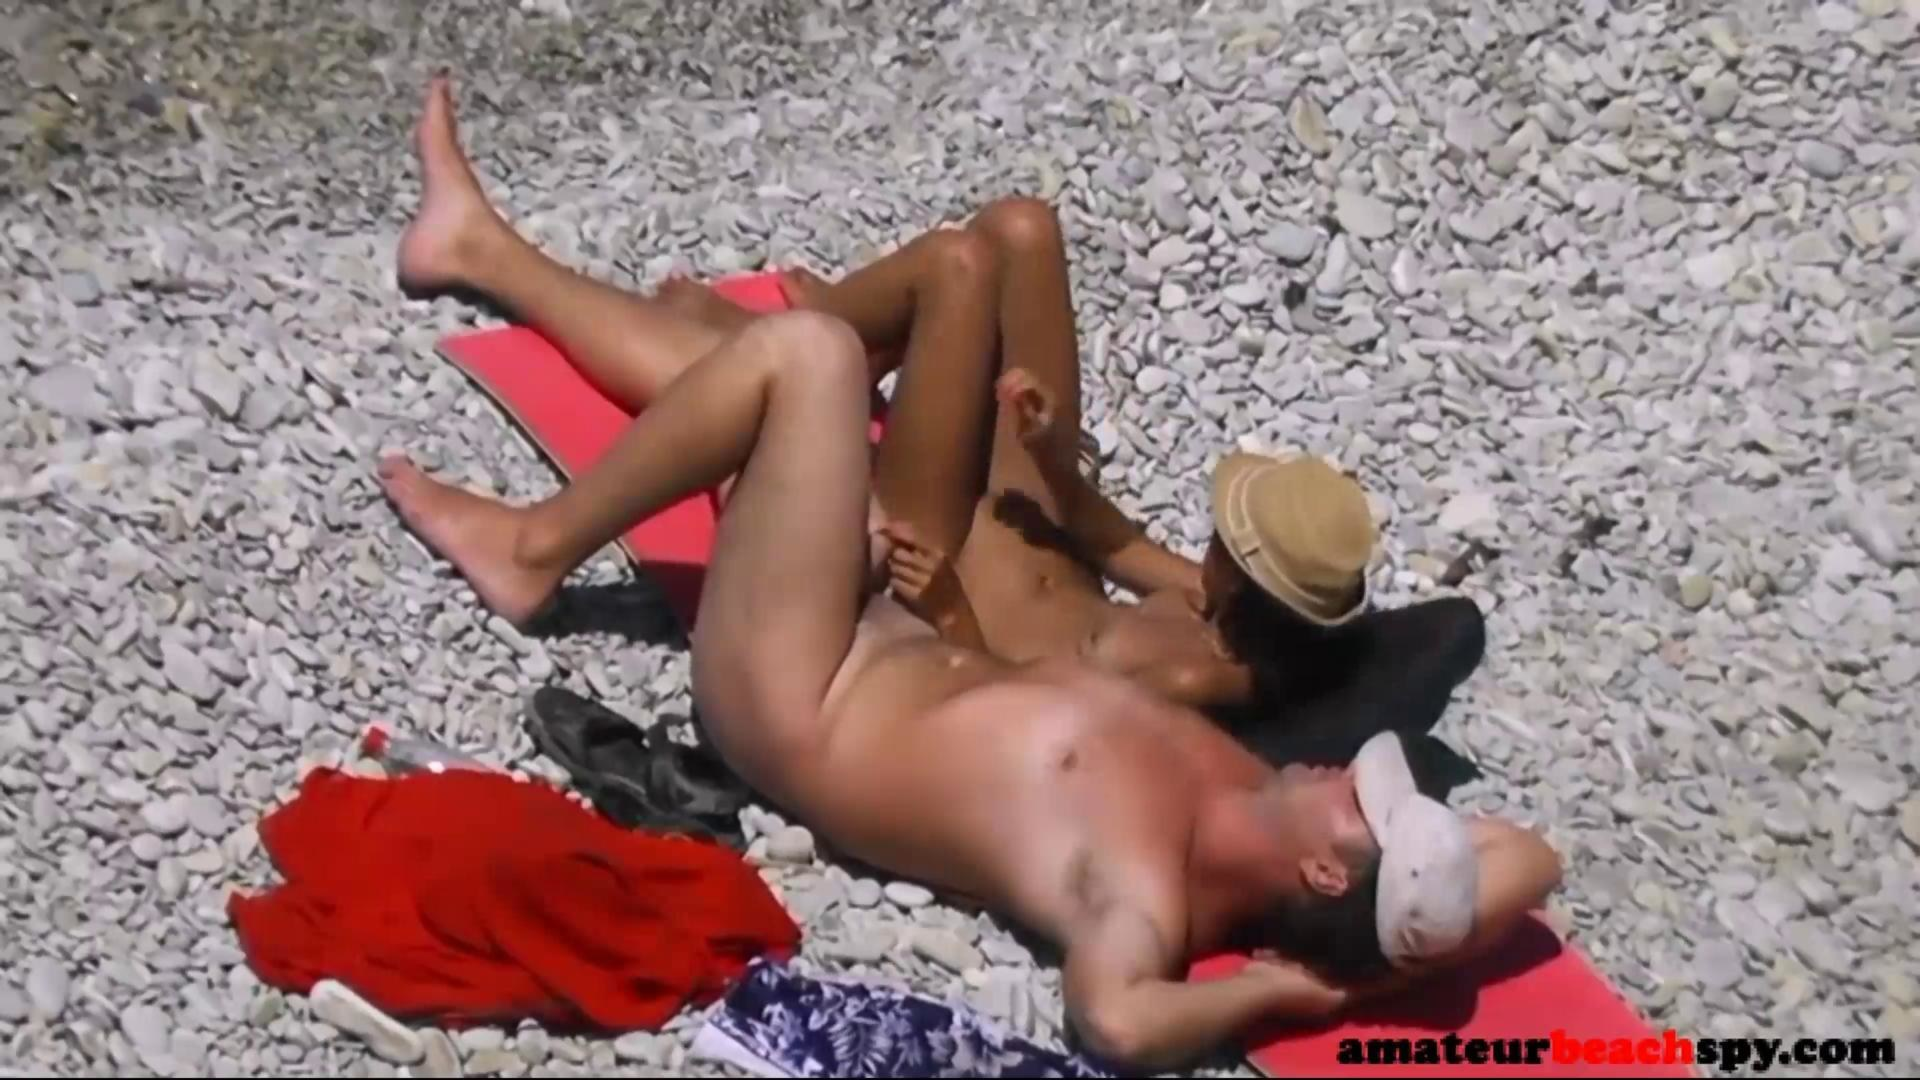 Hot!!!! well nudist beach wife you imagine